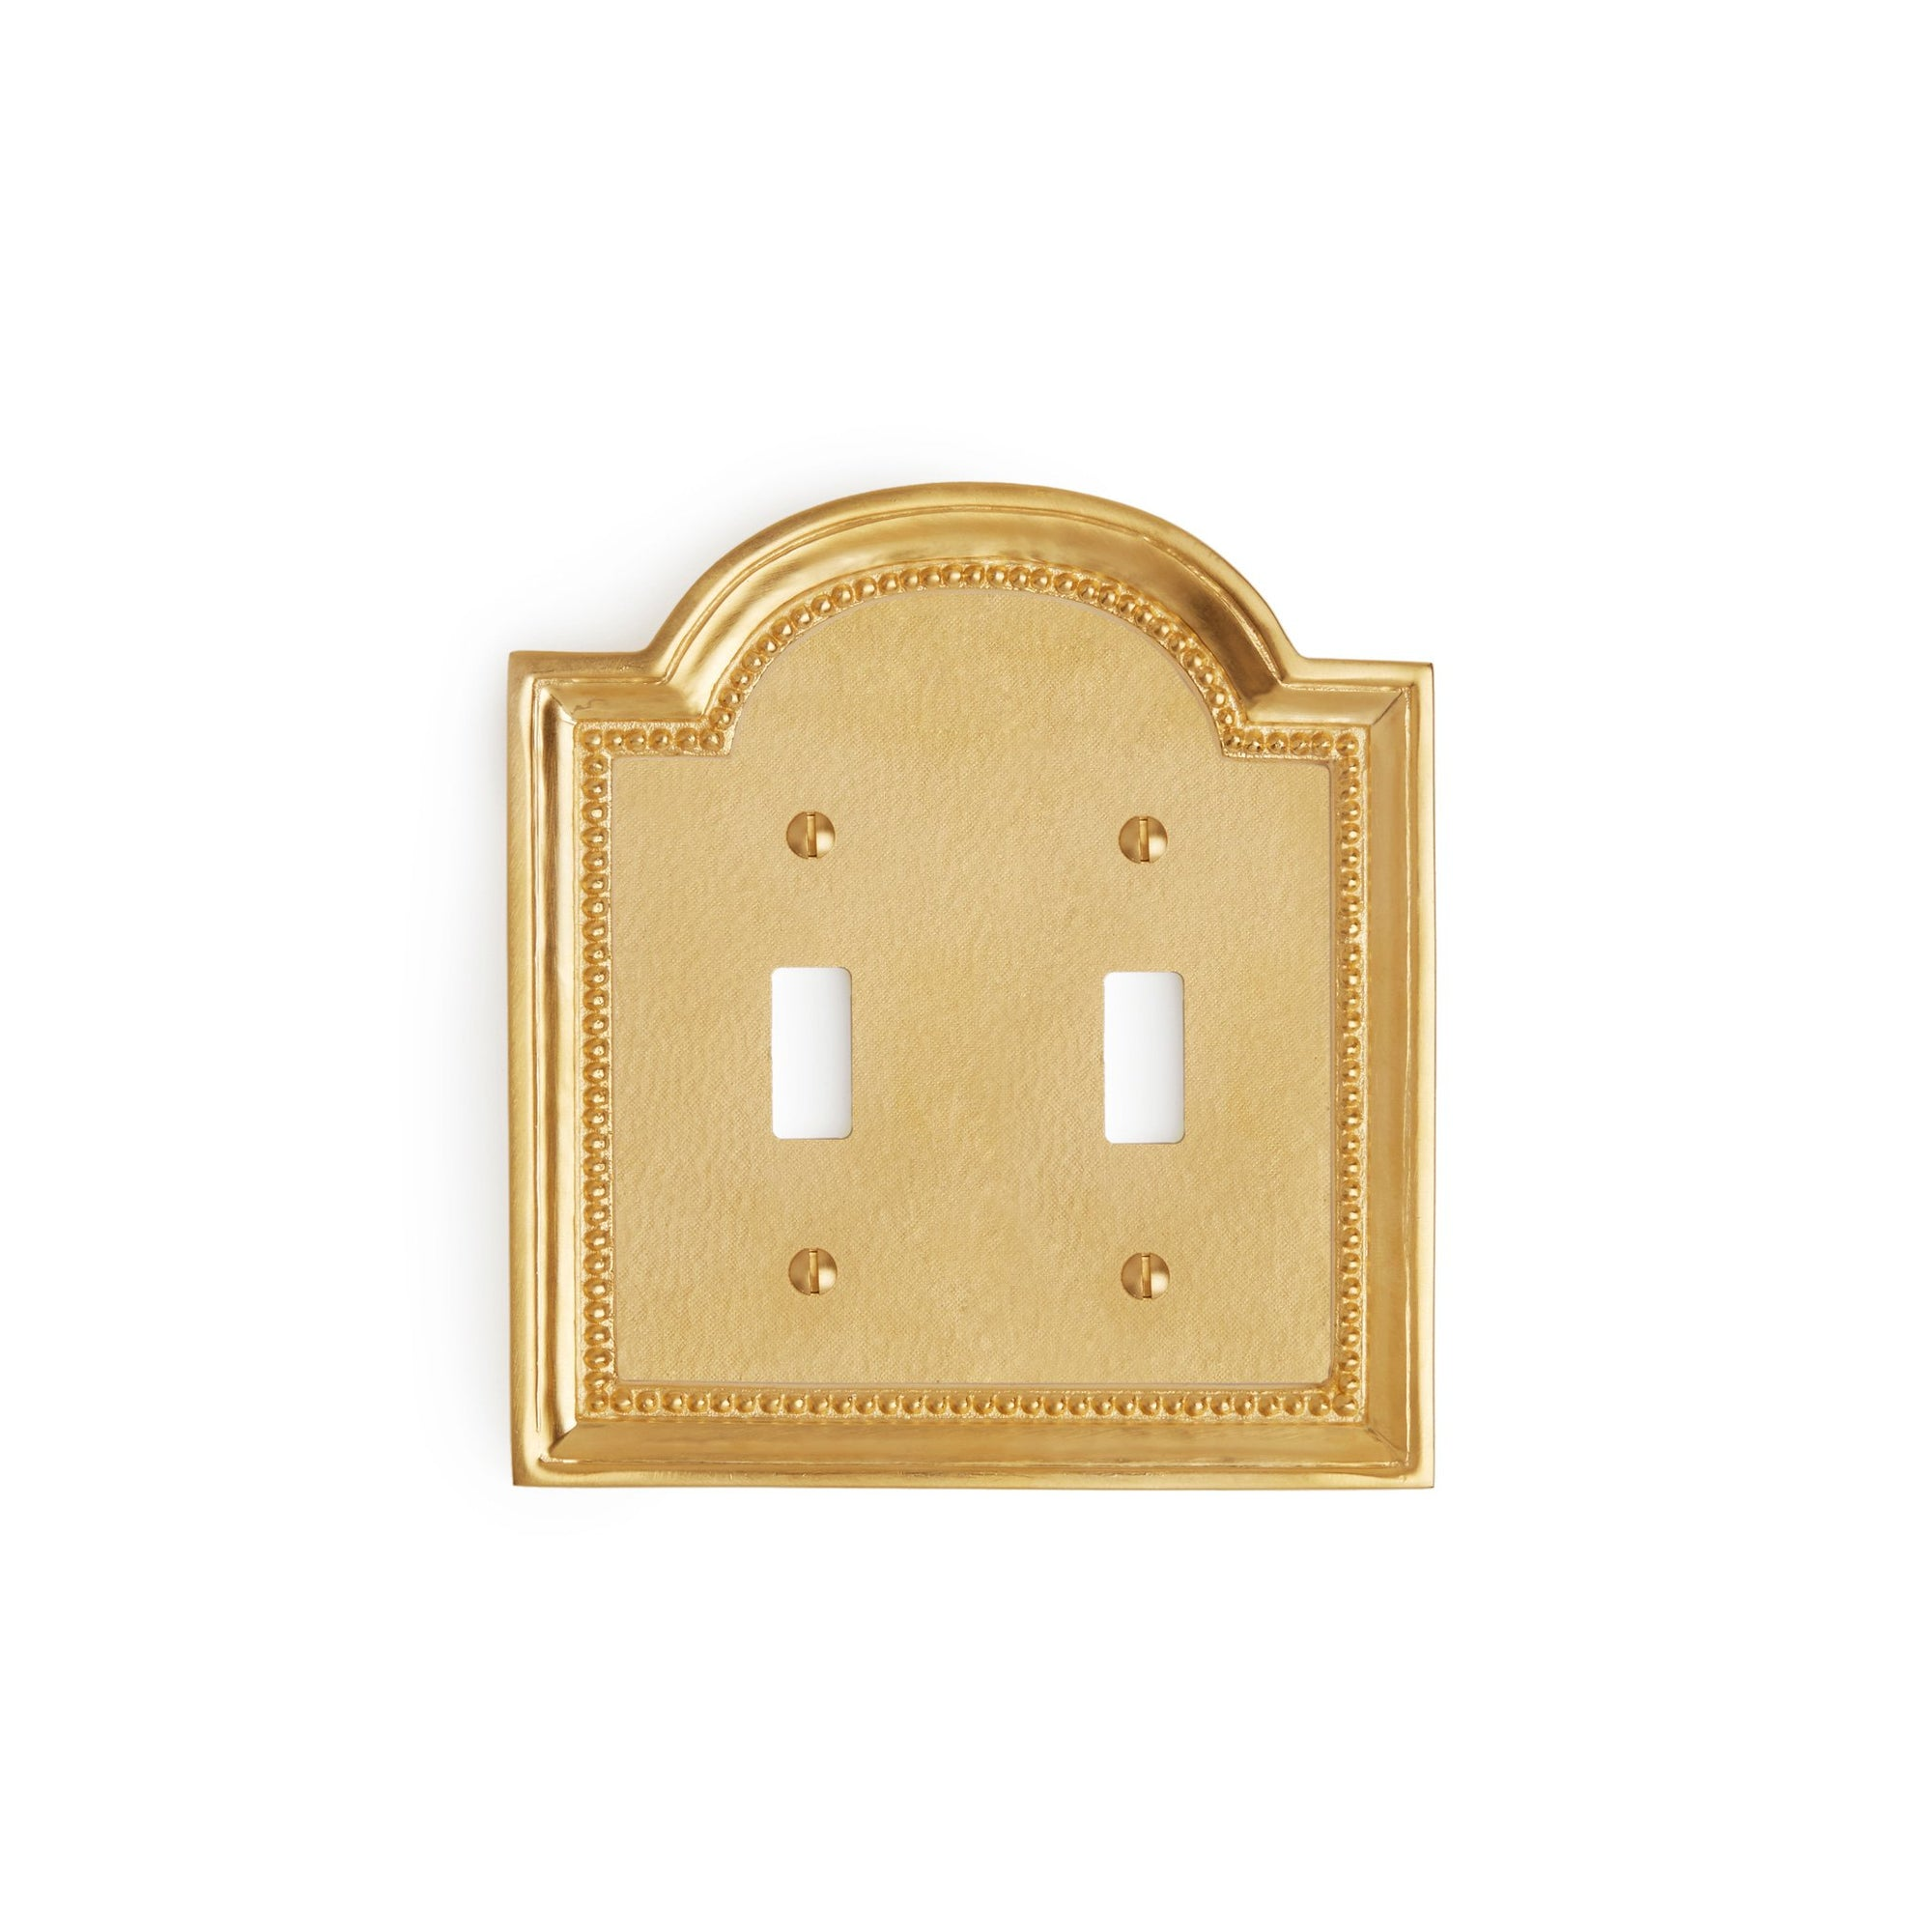 0470D-SWT-GP Sherle Wagner International Classical Double Switch Plate in Gold Plate metal finish